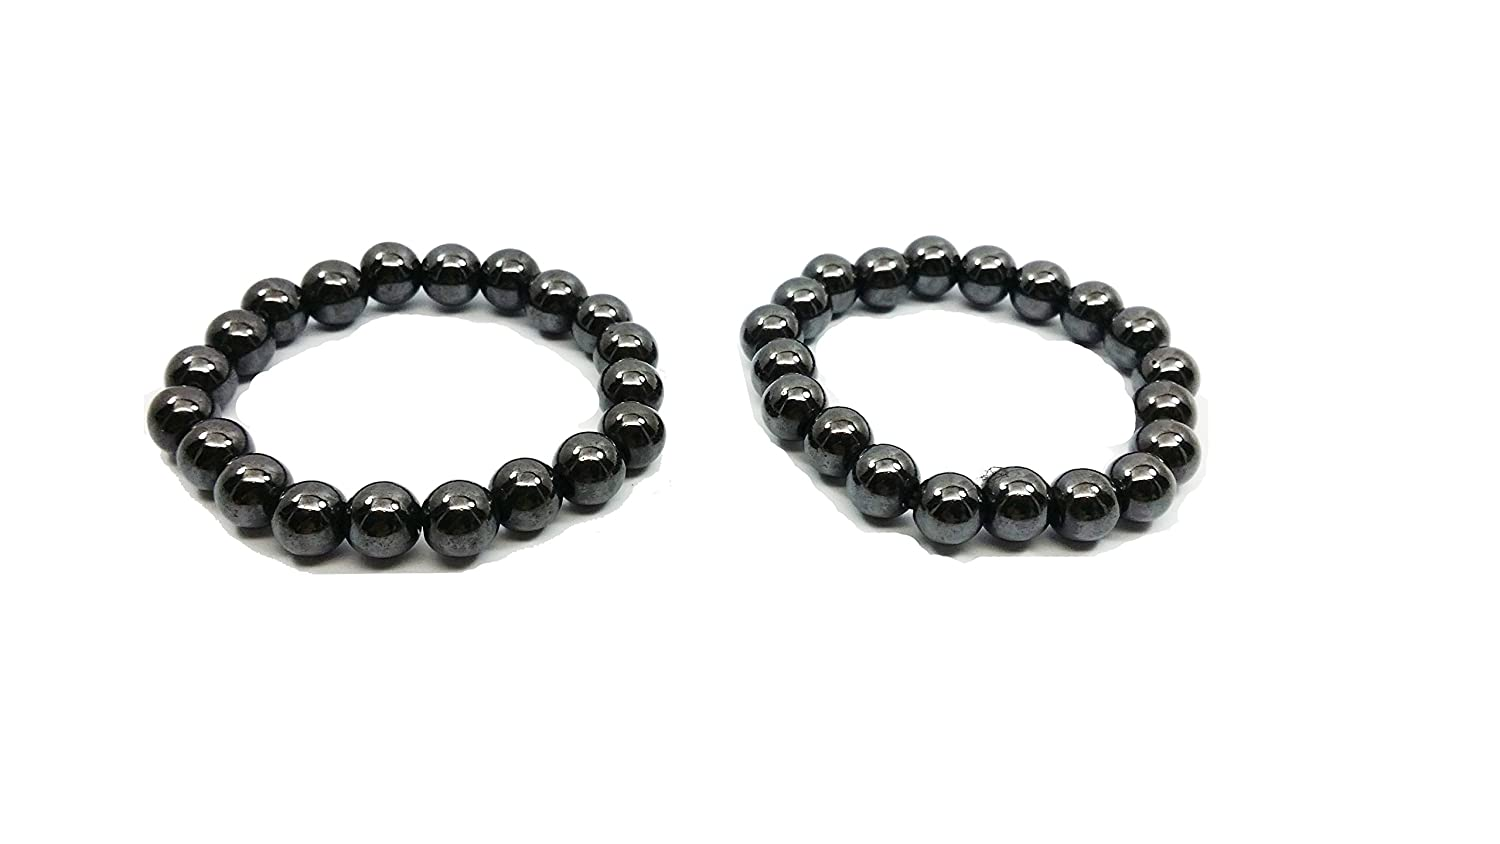 10 mm one pair of Hematite Powerful Magnetic Bracelet for Arthritis Pain Releif or for Sports Related Therapy or for antidepression